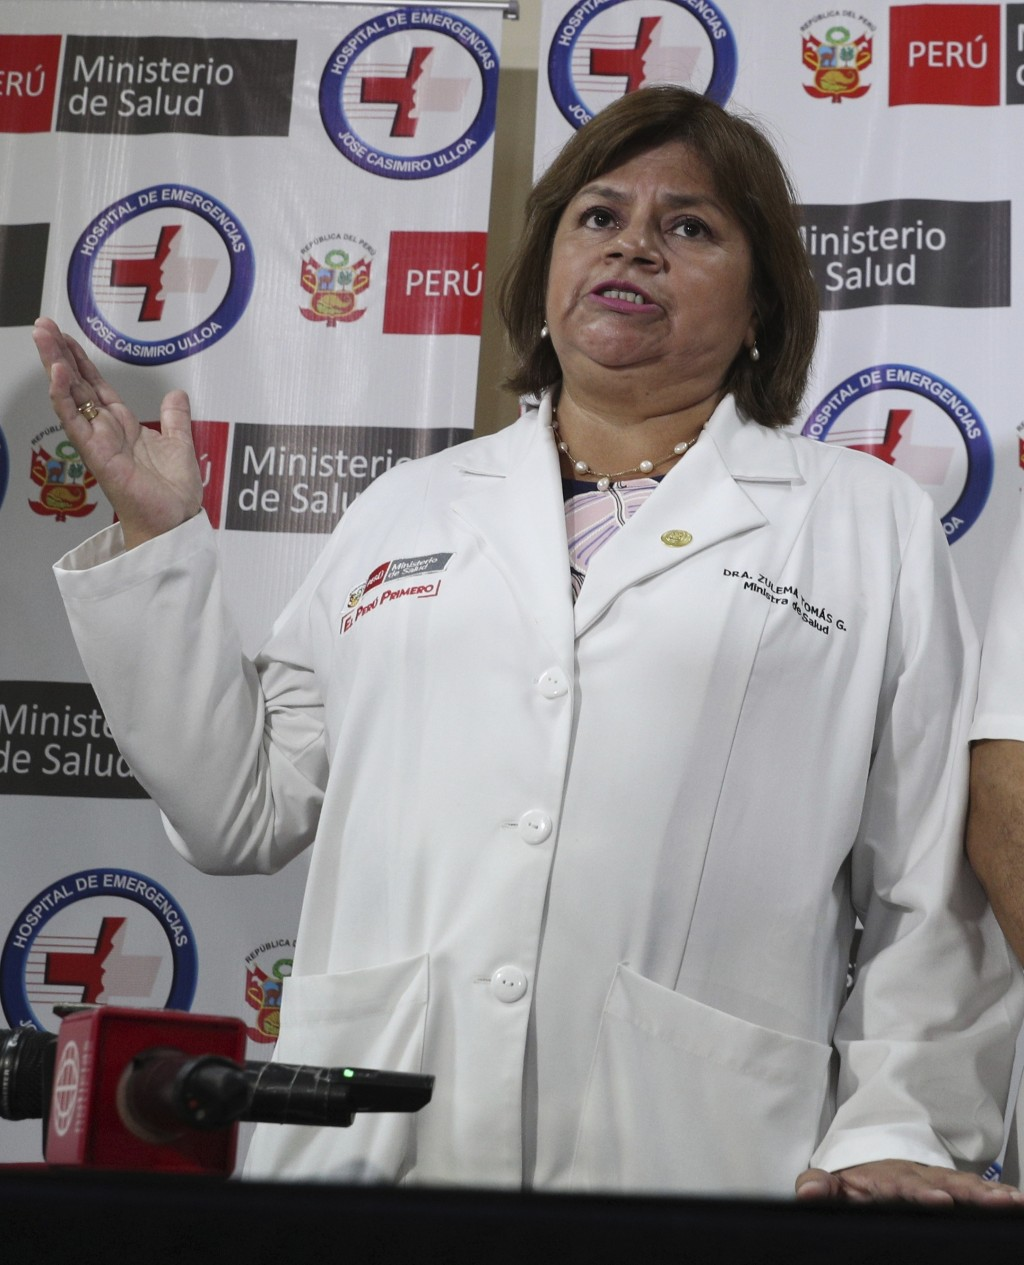 Health Minister Zulema Tomas speaks at a news conference at the Casimiro Ulloa hospital where former Peruvian President Alan Garcia was taken after he